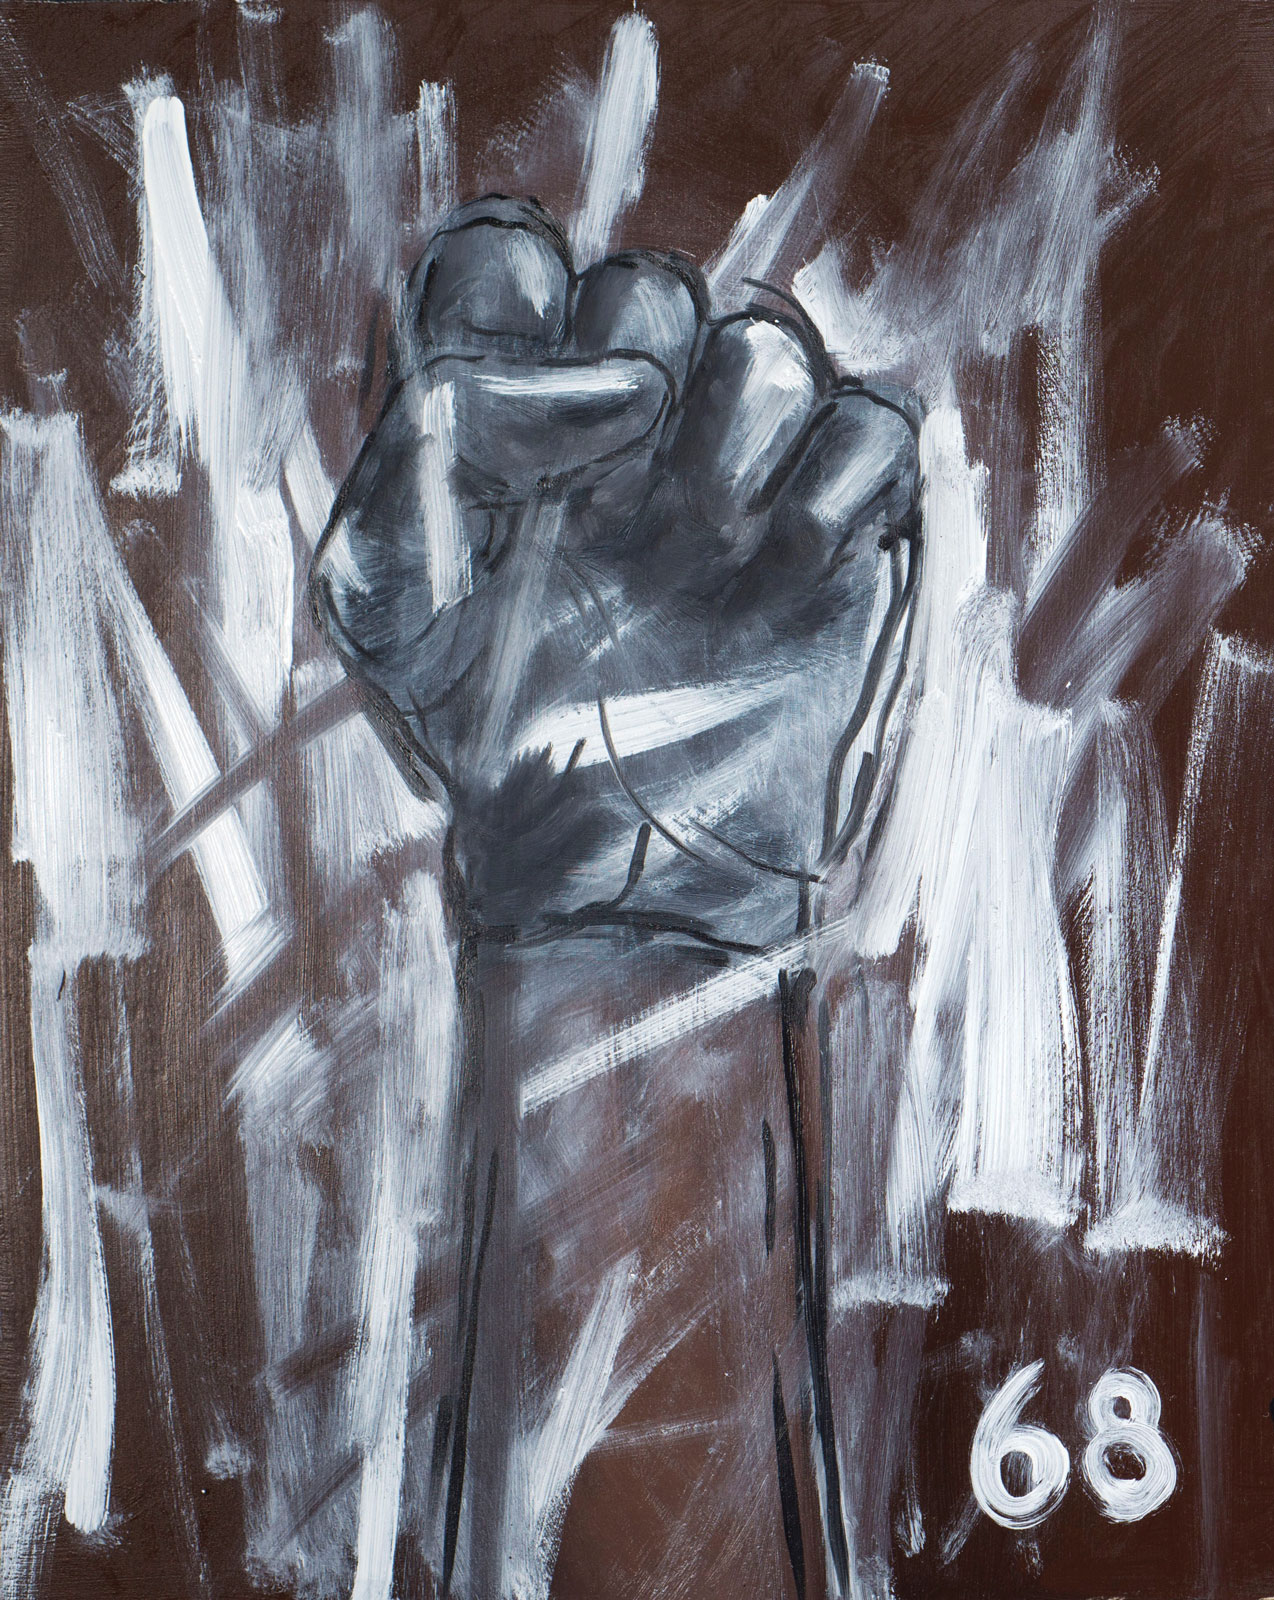 <i>1968/2014</i> (2014), Diptych (1): 20˝ × 16˝, oil on panel